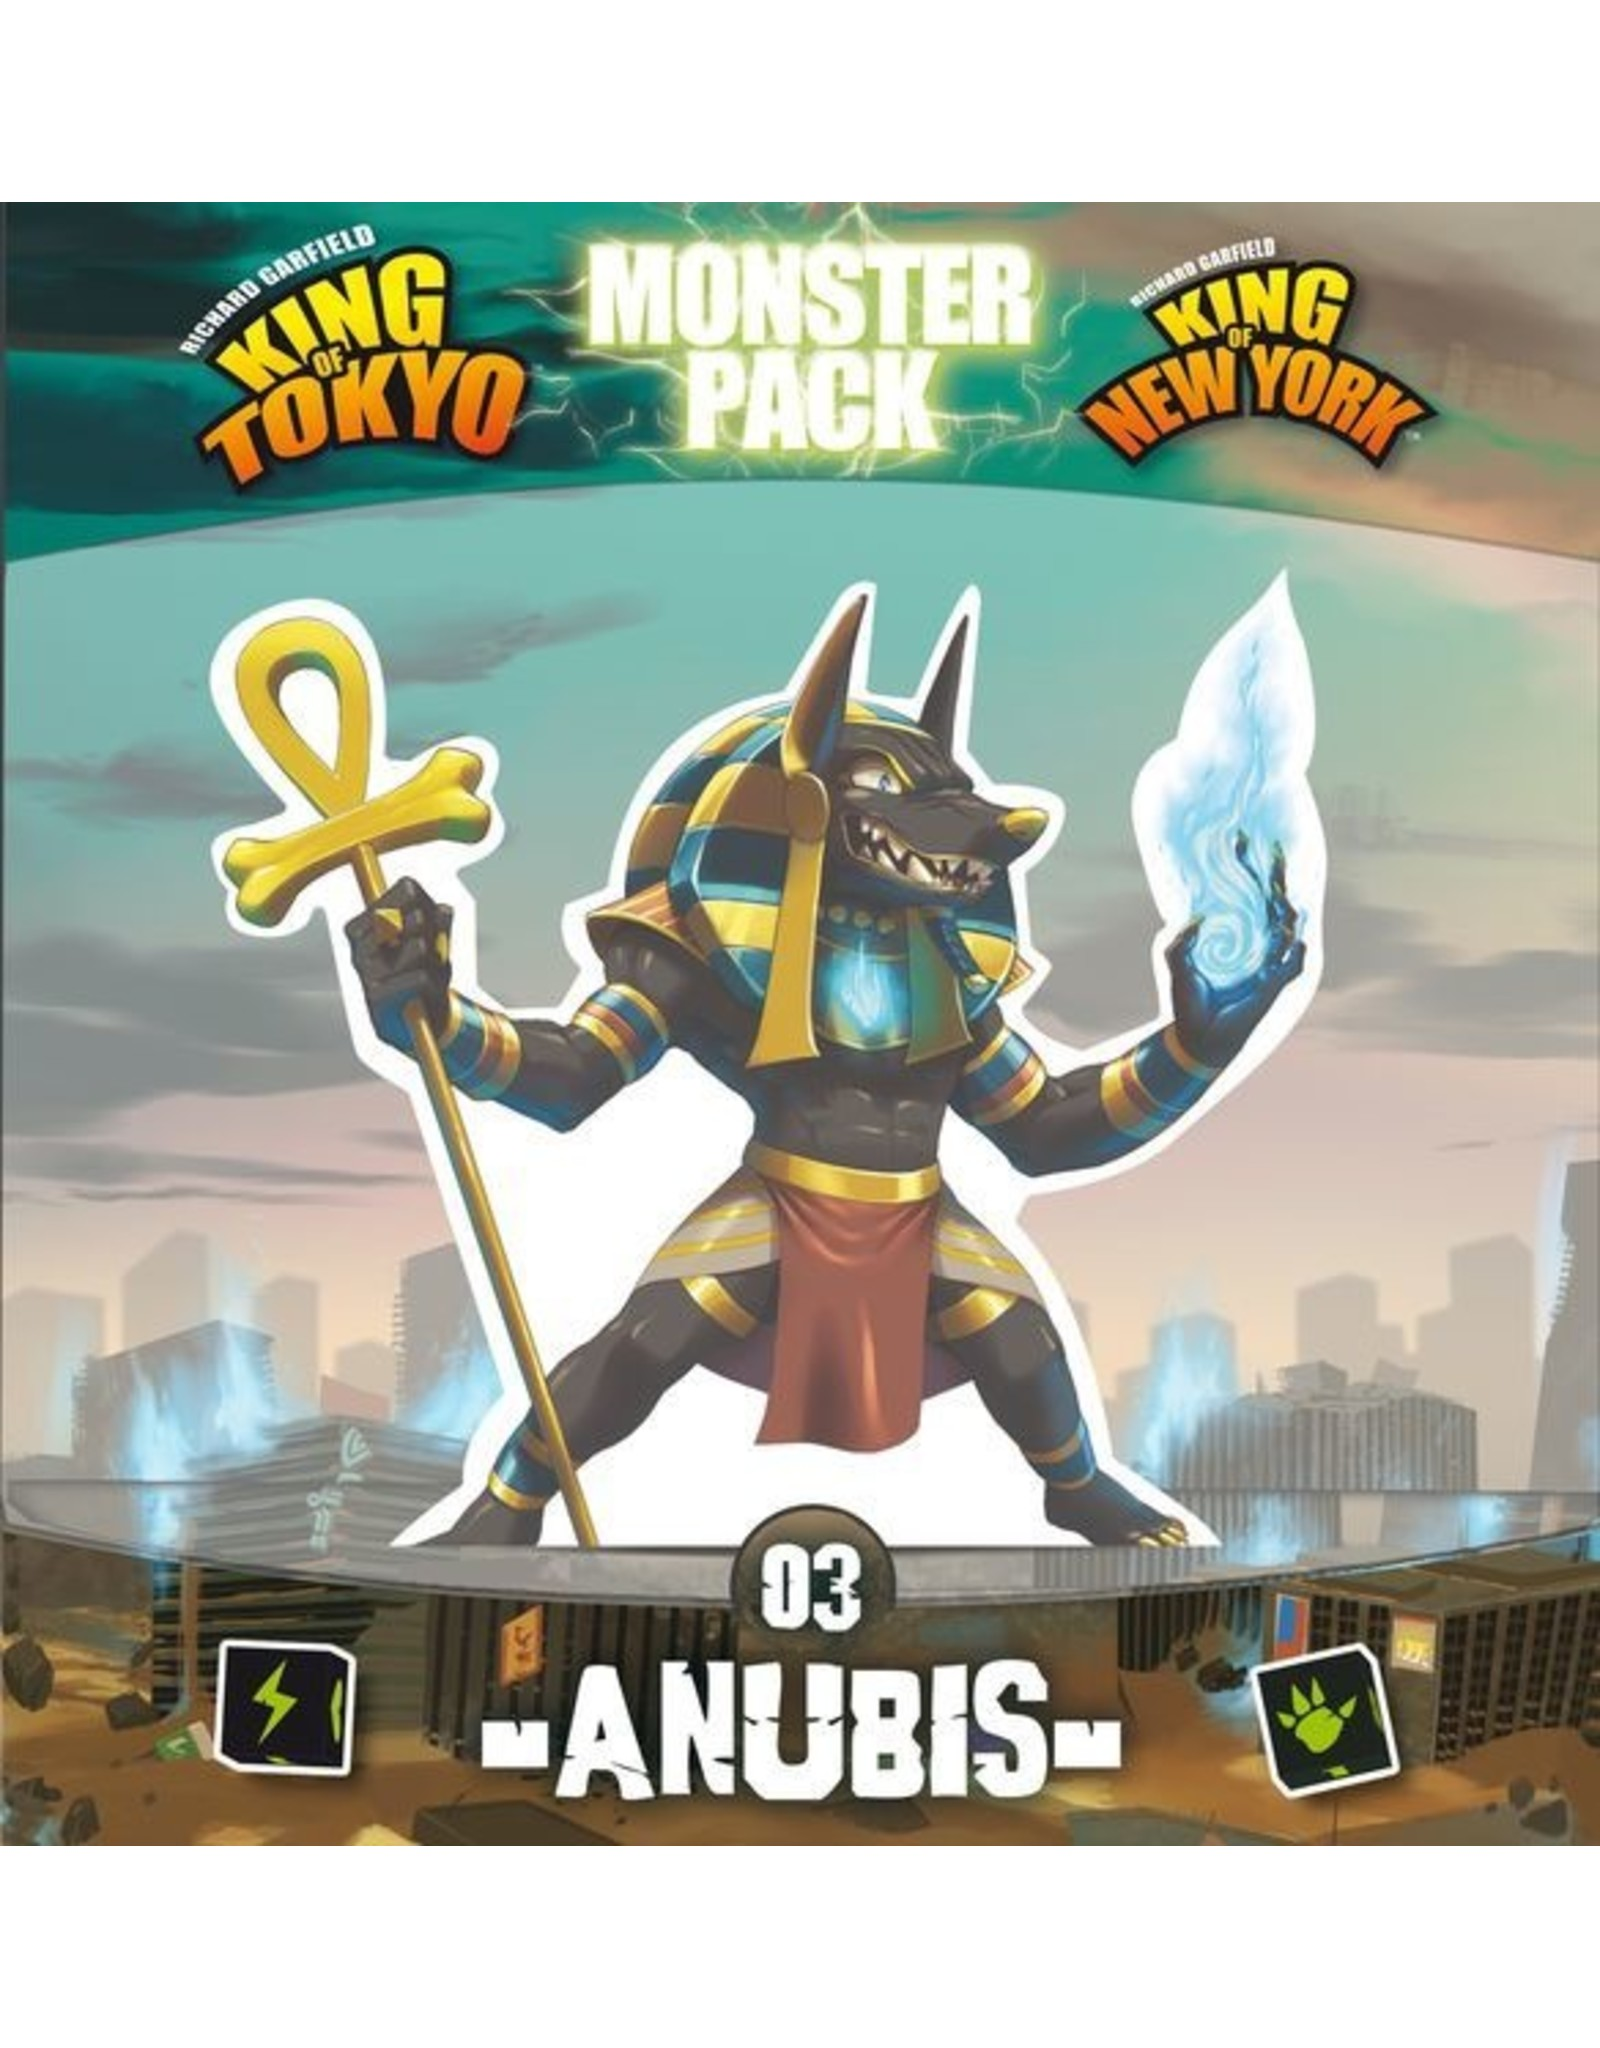 King of Tokyo/New York: Anubis Monster Pack